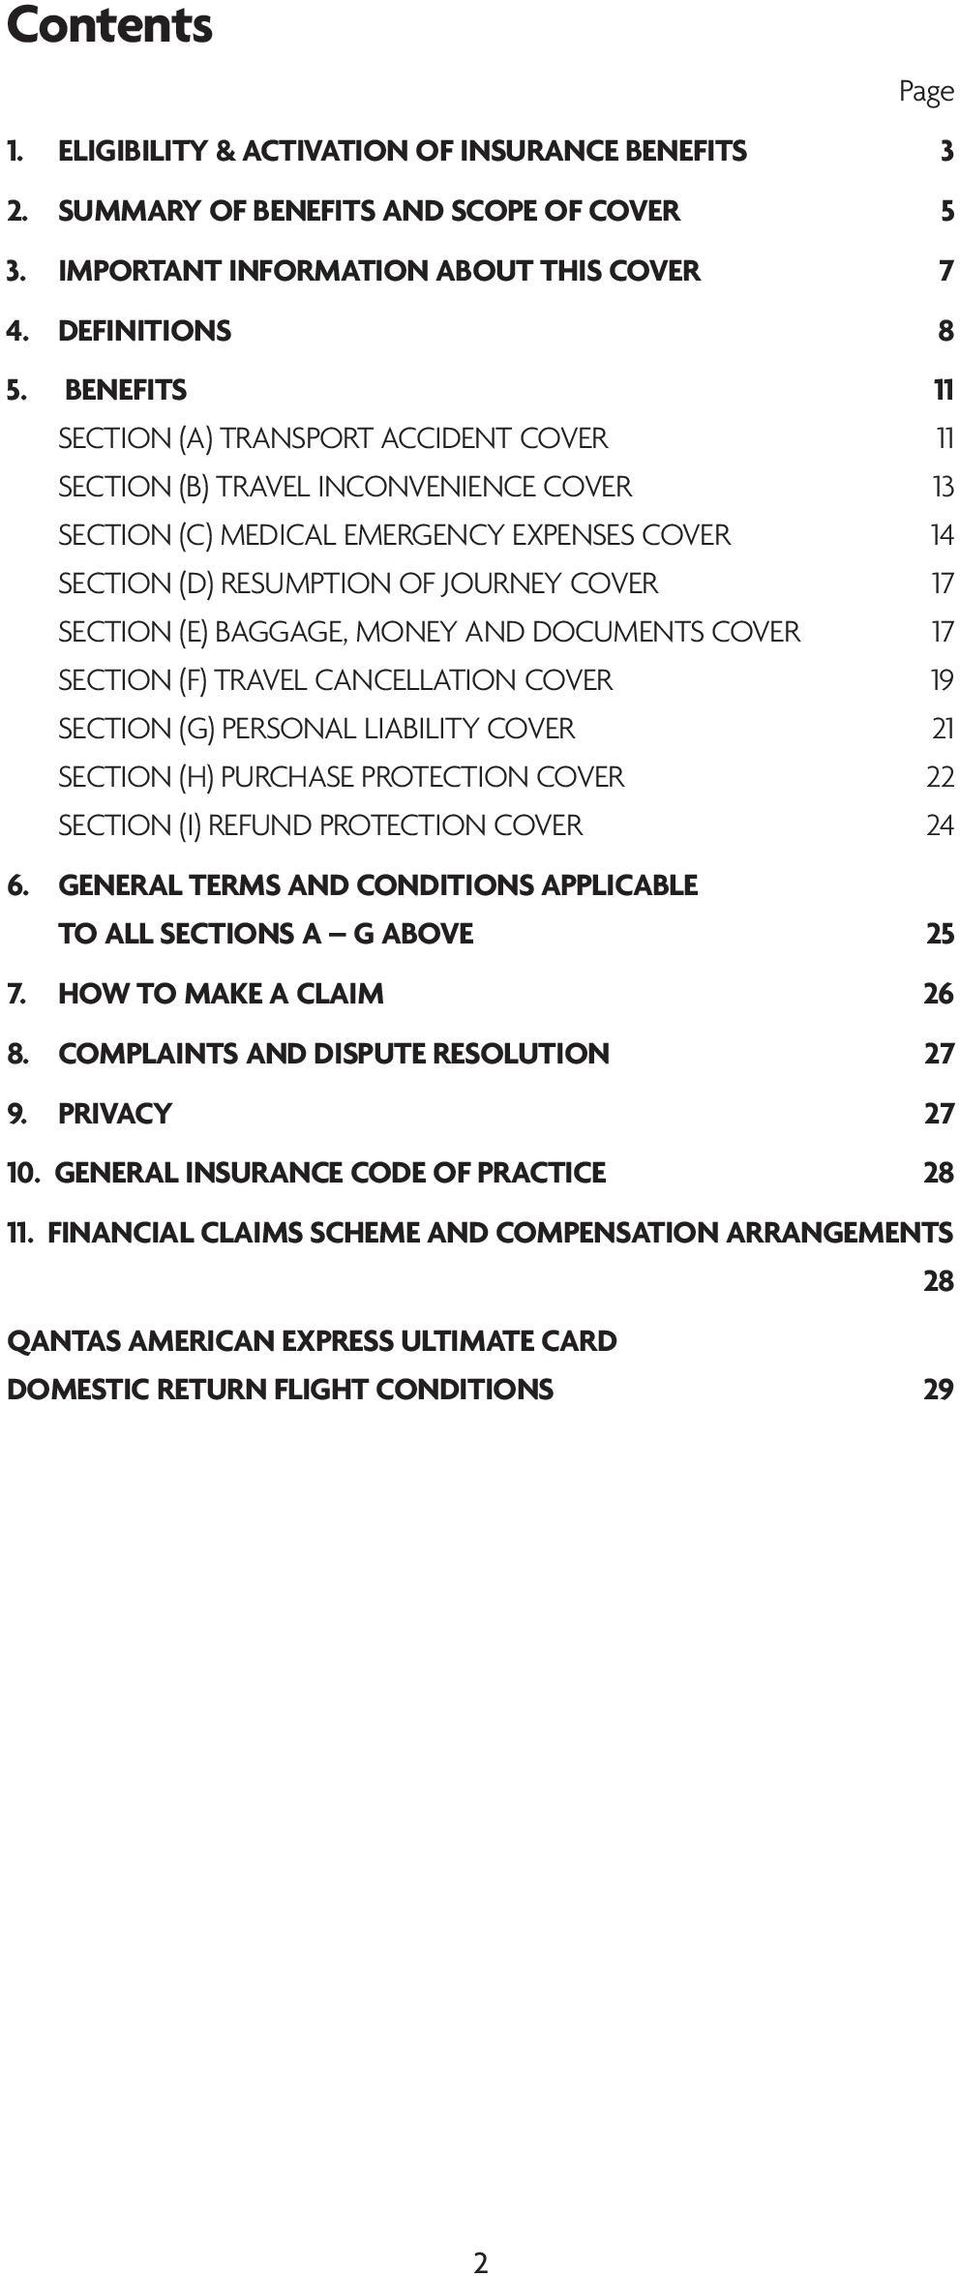 BAGGAGE, MONEY AND DOCUMENTS COVER 17 SECTION (F) TRAVEL CANCELLATION COVER 19 SECTION (G) PERSONAL LIABILITY COVER 21 SECTION (H) PURCHASE PROTECTION COVER 22 SECTION (I) REFUND PROTECTION COVER 24